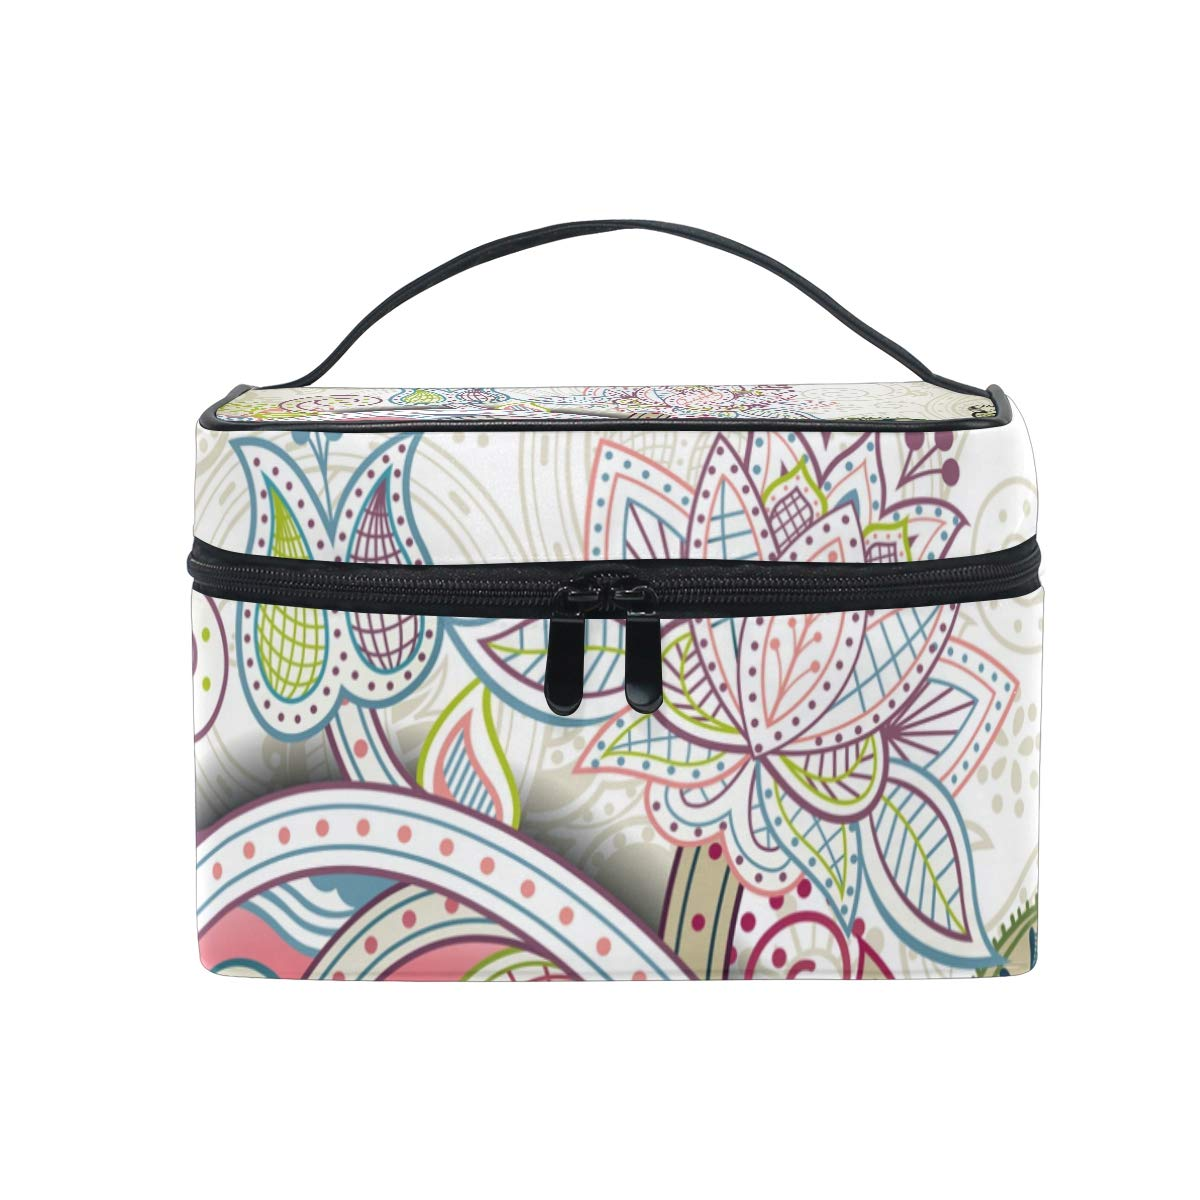 Makeup Bag Bohemian Blossom Retro Art Travel Cosmetic Bags Organizer Train Case Toiletry Make Up Pouch for Womens Girls